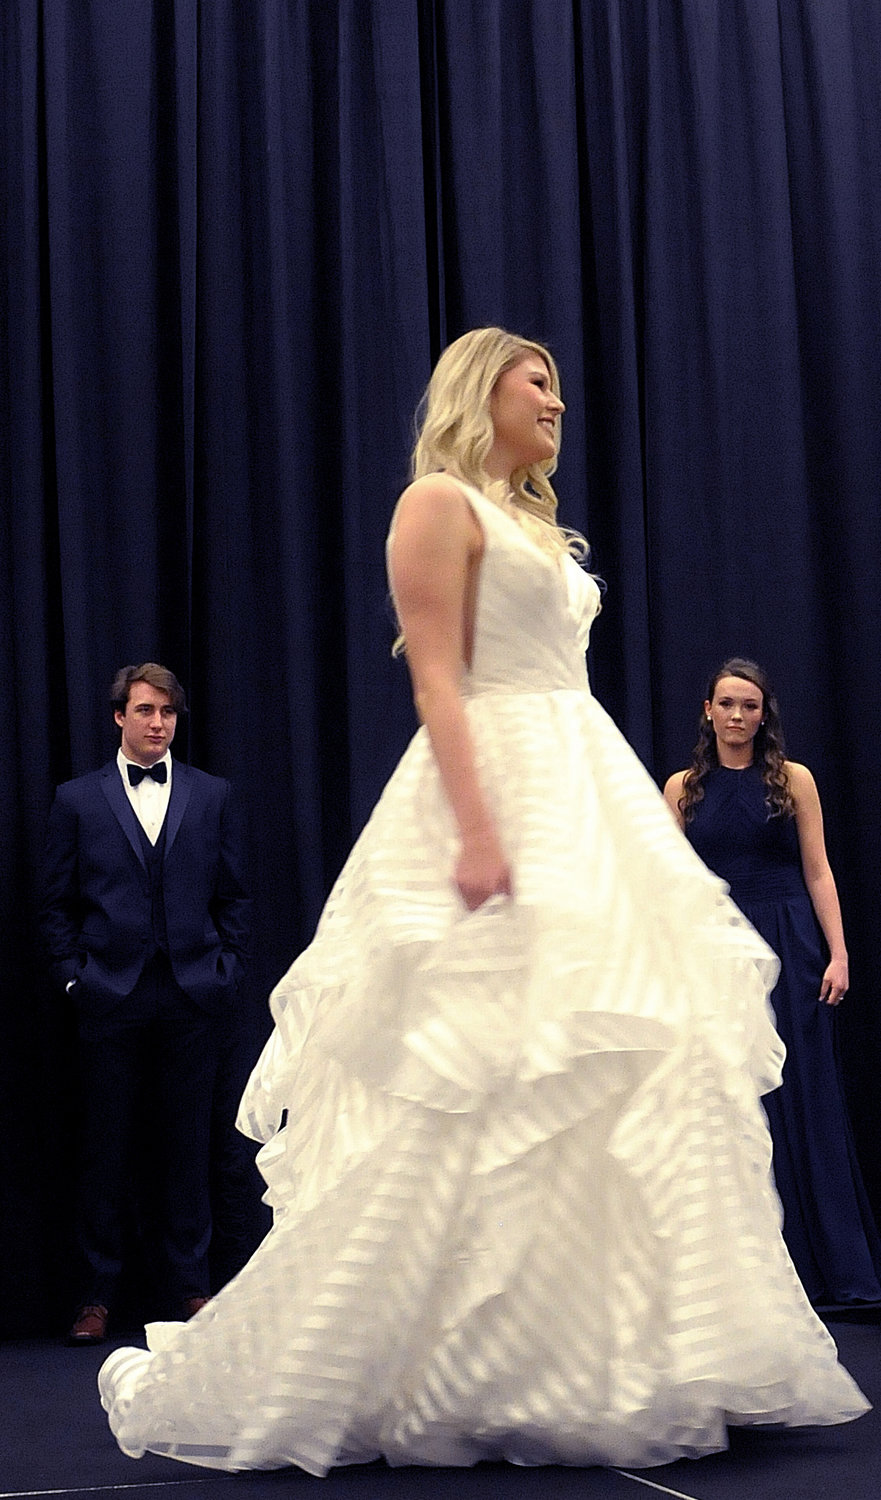 The Northwest Georgia Bridal Show at the Clarence Brown Conference Center in Cartersville featured a fashion show for brides, bridesmaids, grooms and groomsmen.